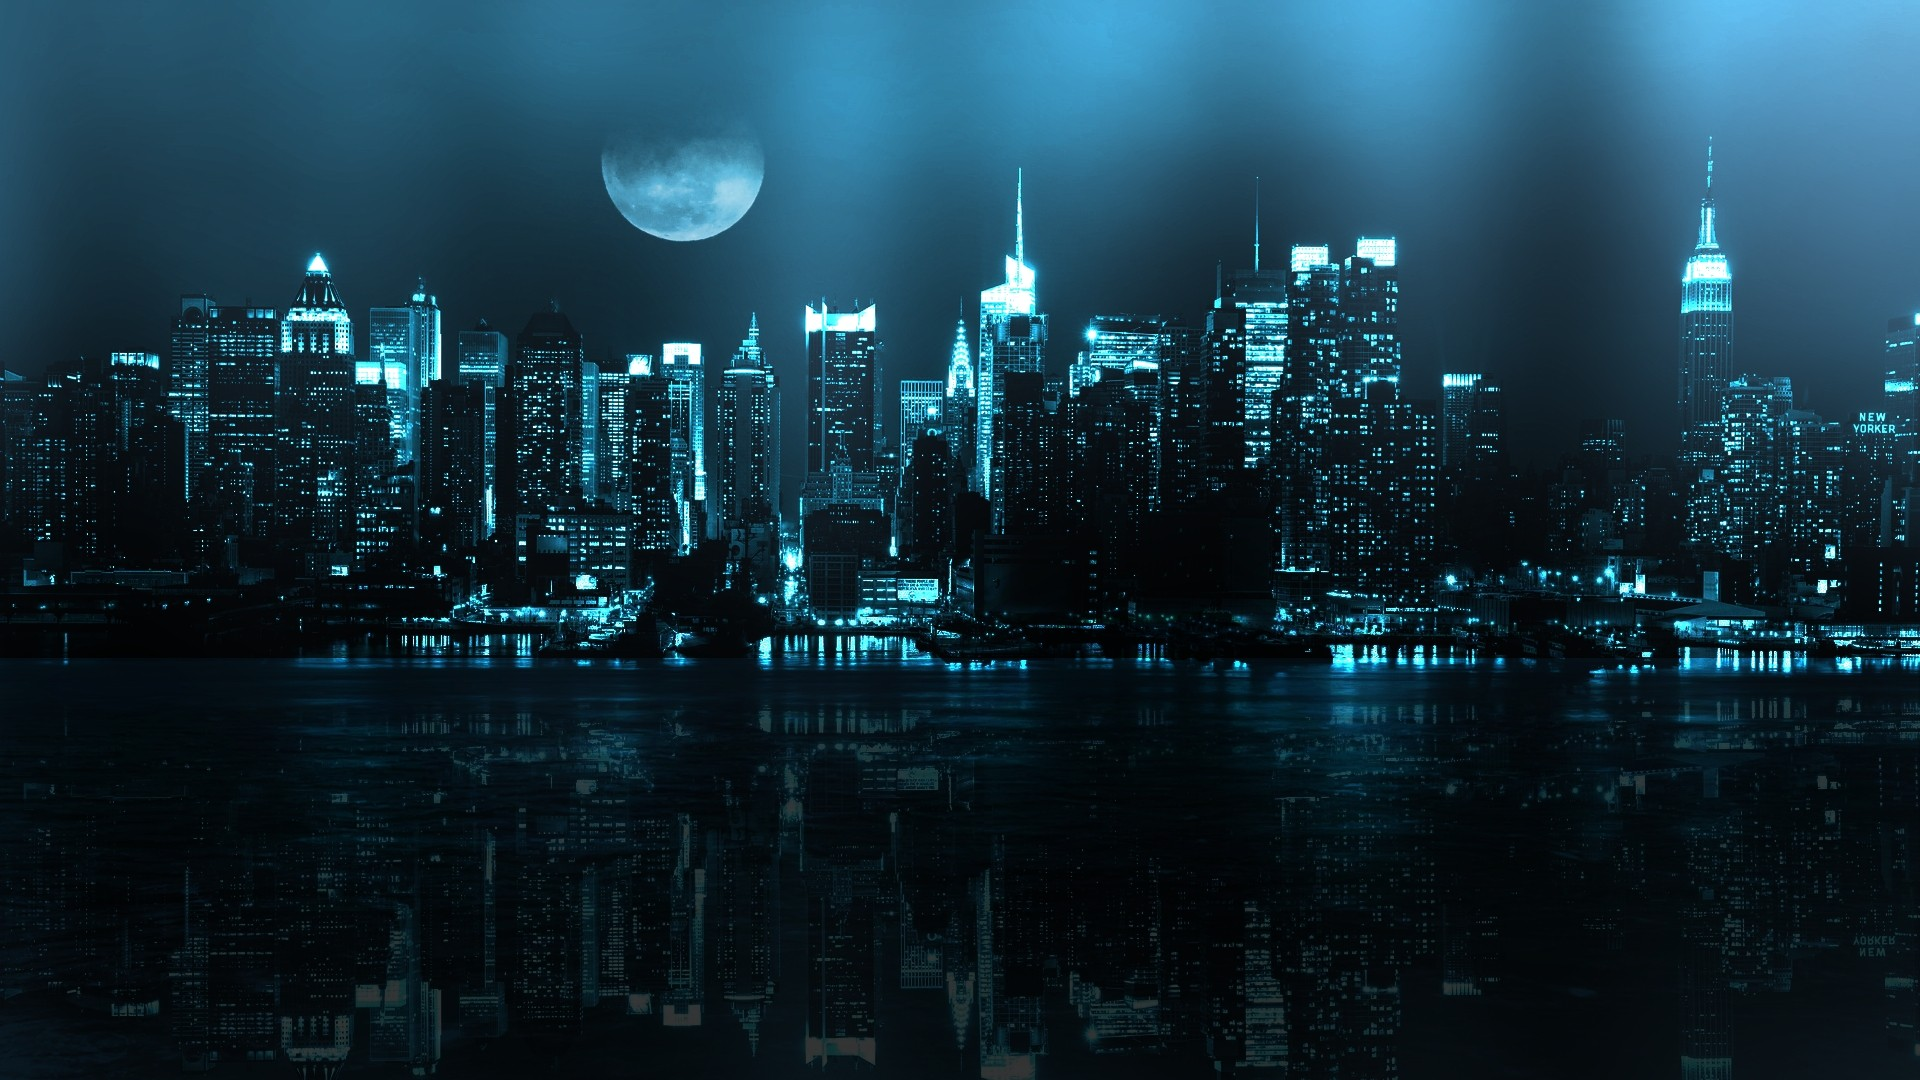 Desktop Backgrounds, nighty, city ,wallpaper, hd